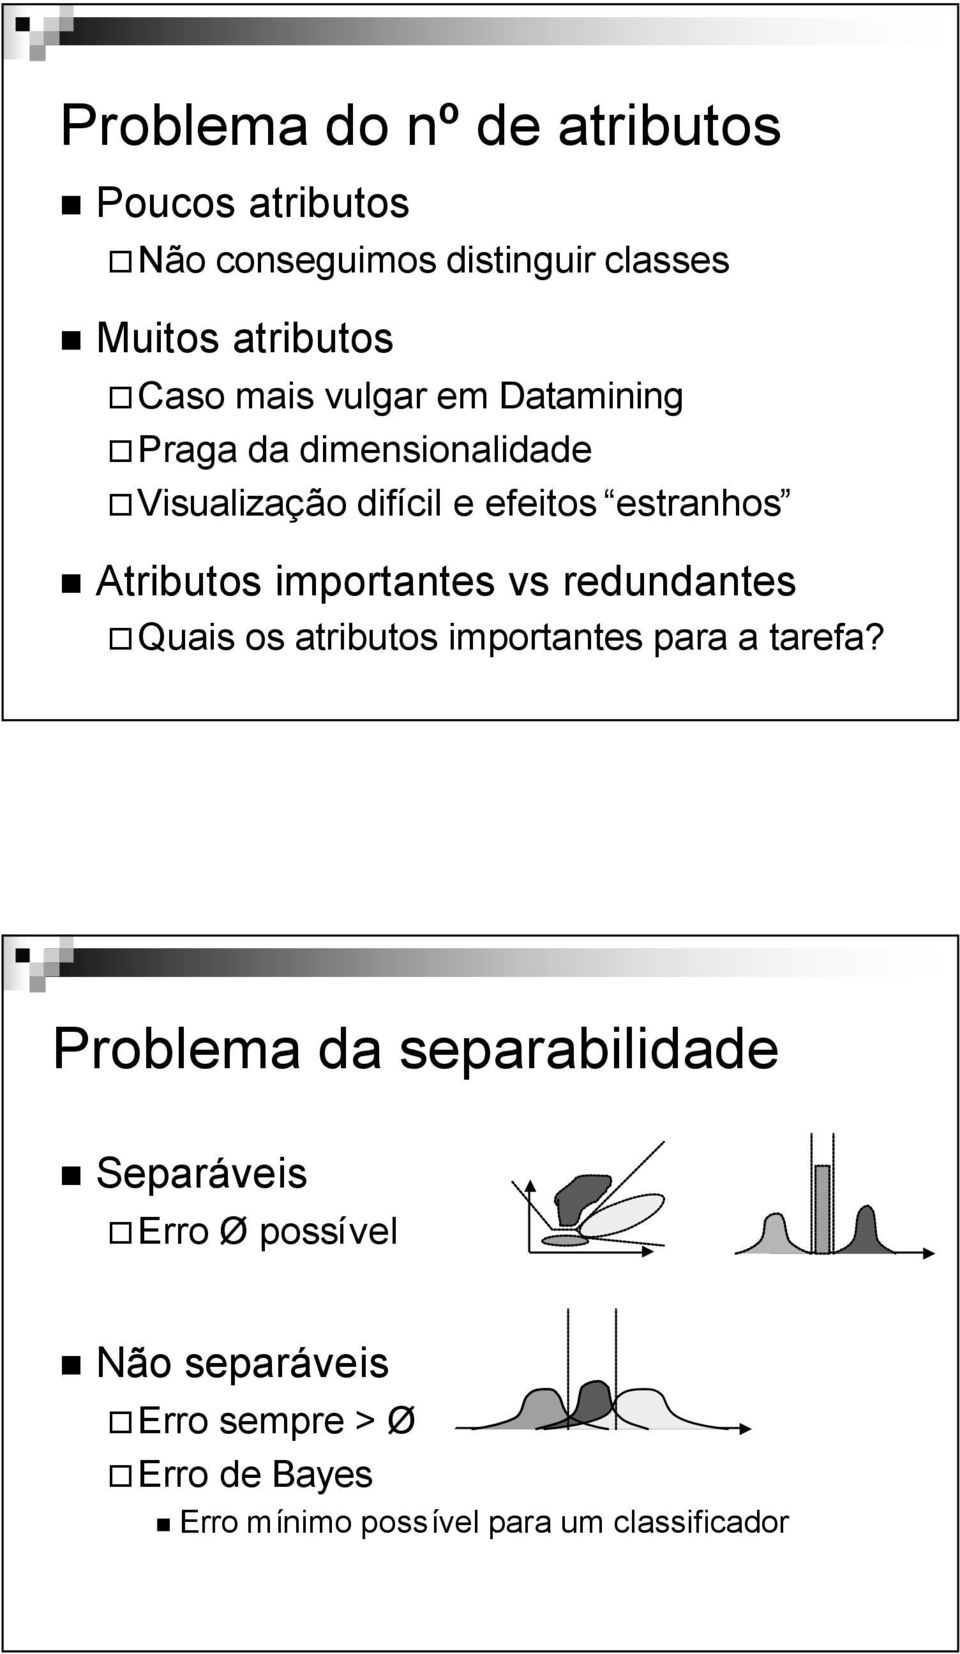 importantes vs redundantes Quais os atributos importantes para a tarefa?